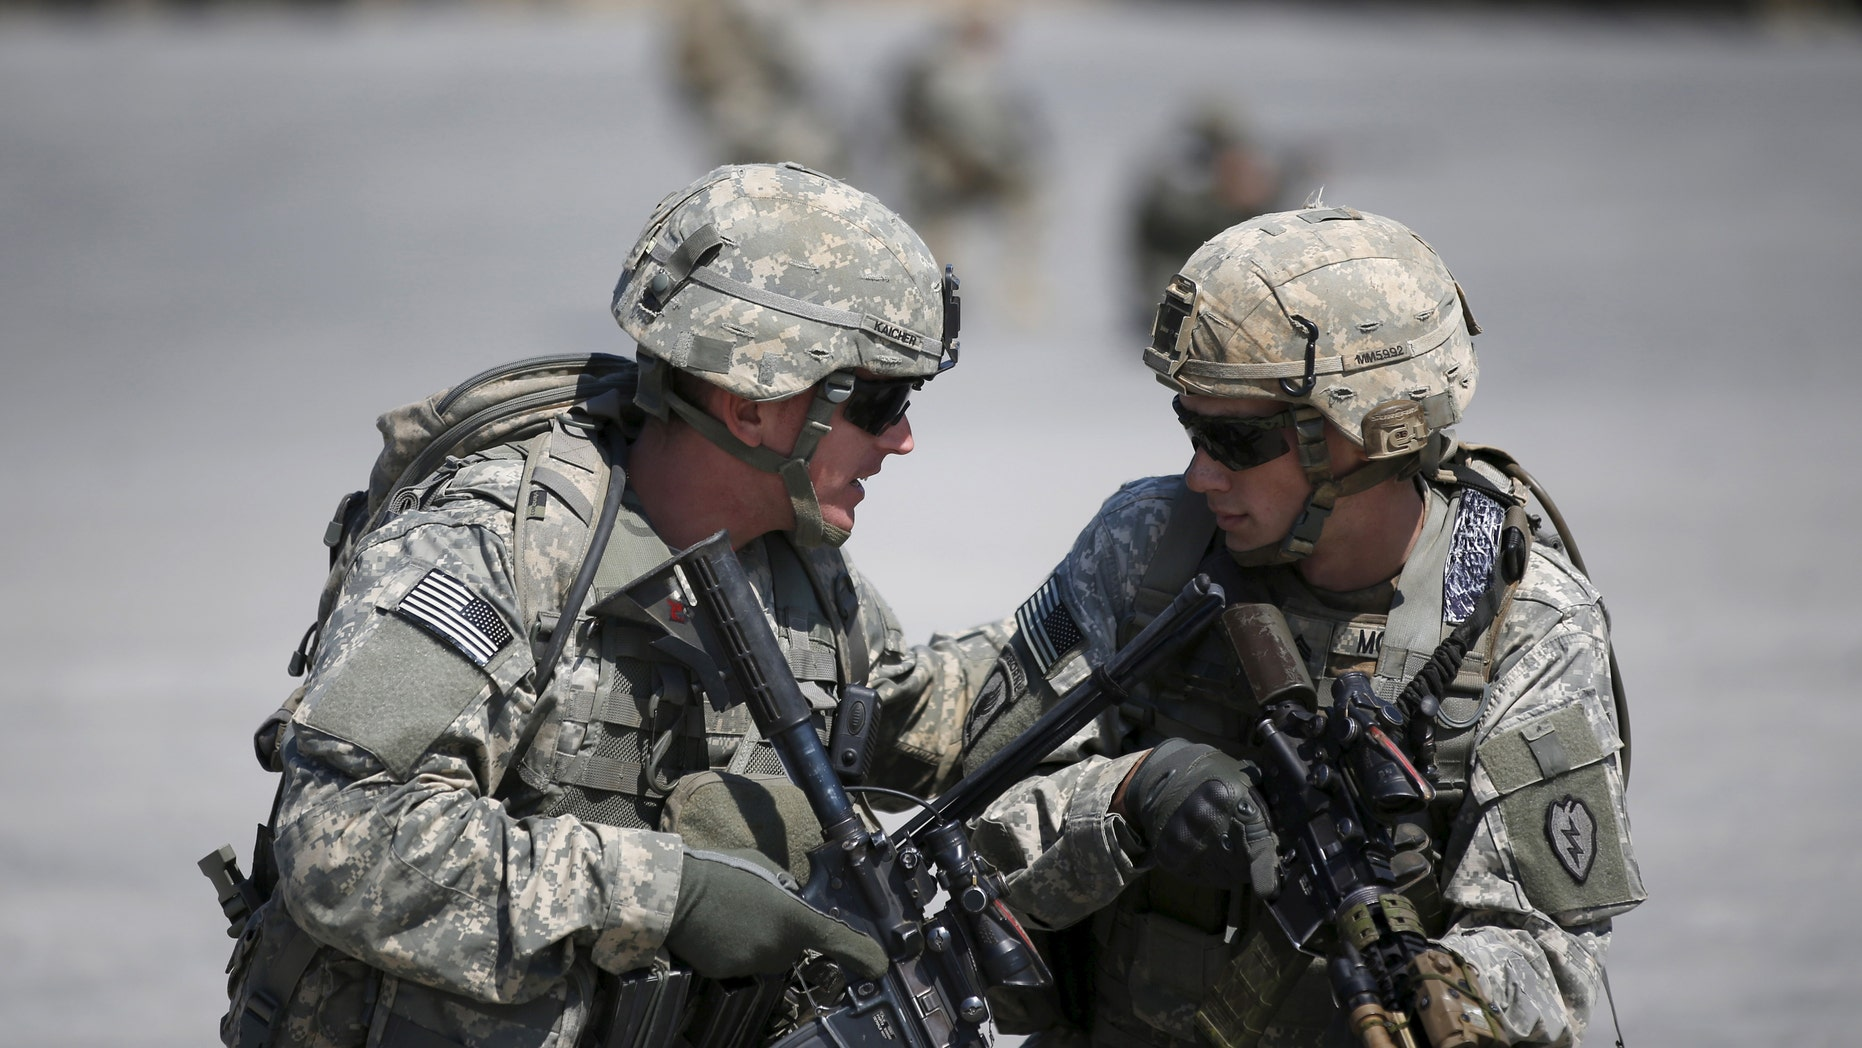 File photo - U.S. Army soldiers take part in a U.S.-South Korea joint live-fire military exercise at a training field in Pocheon, south of the demilitarized zone separating the two Koreas, March 25, 2015.